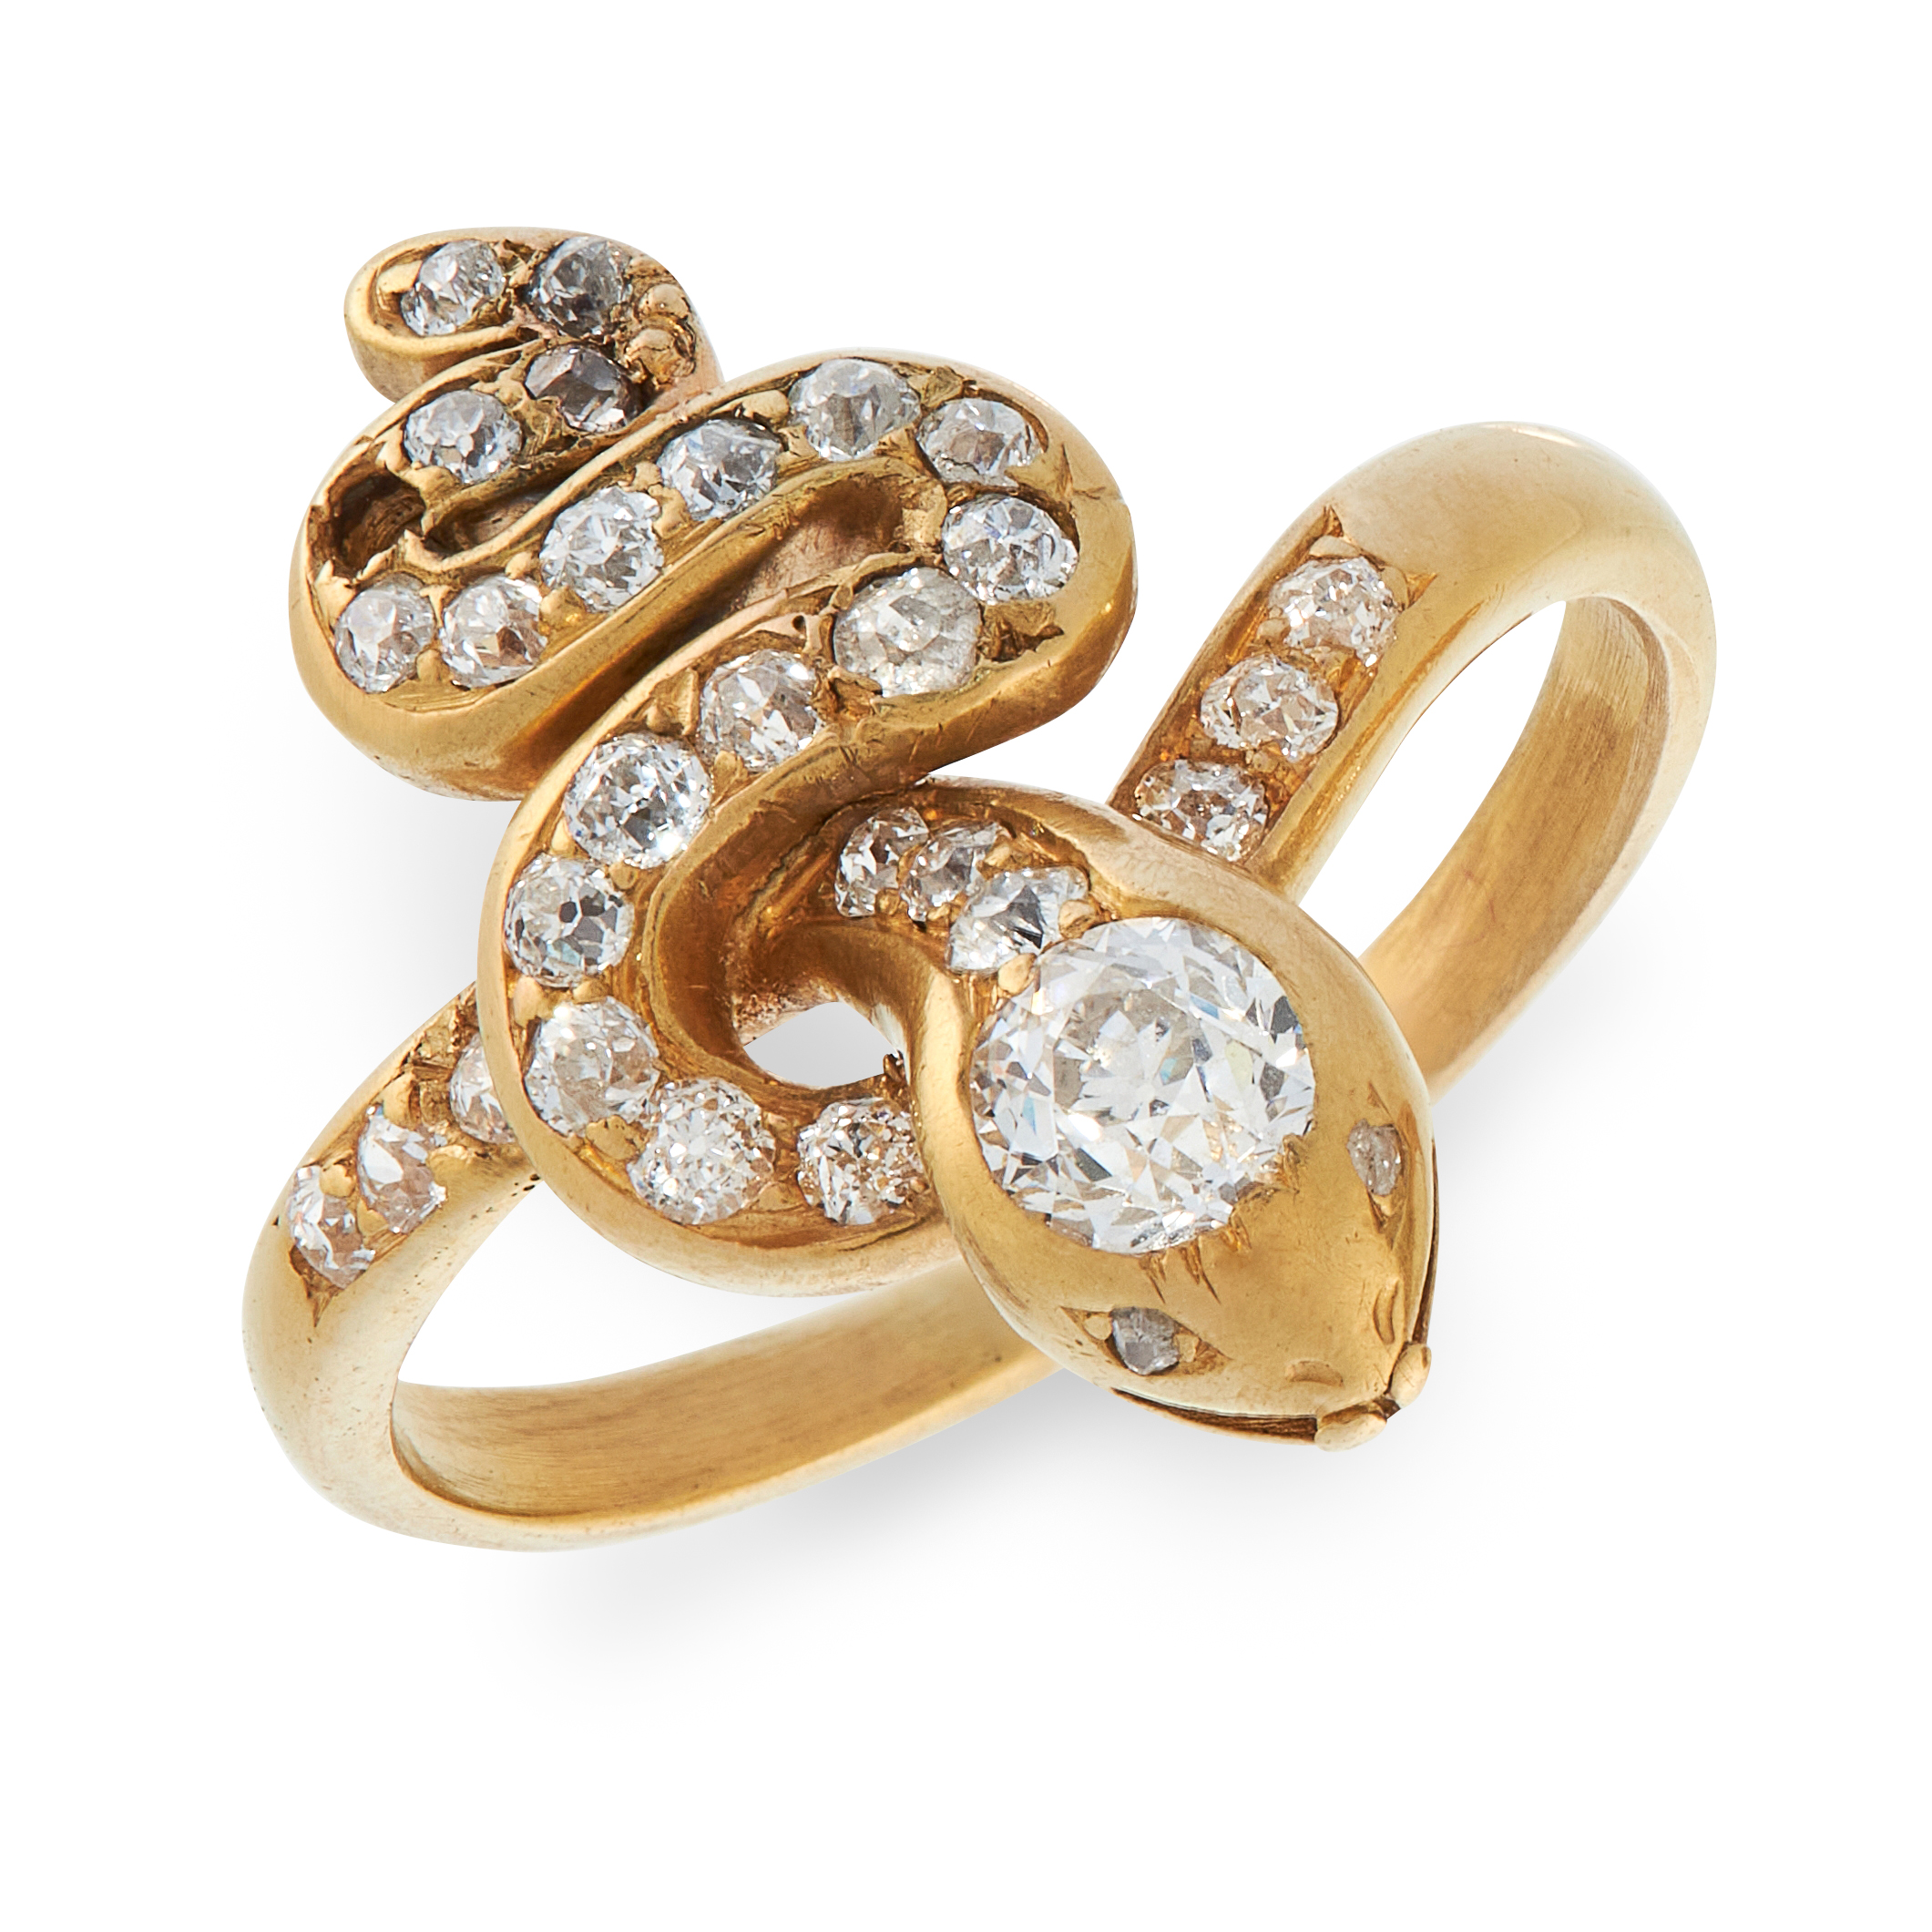 A DIAMOND SNAKE RING in high carat yellow gold, designed as the body of a snake coiled around